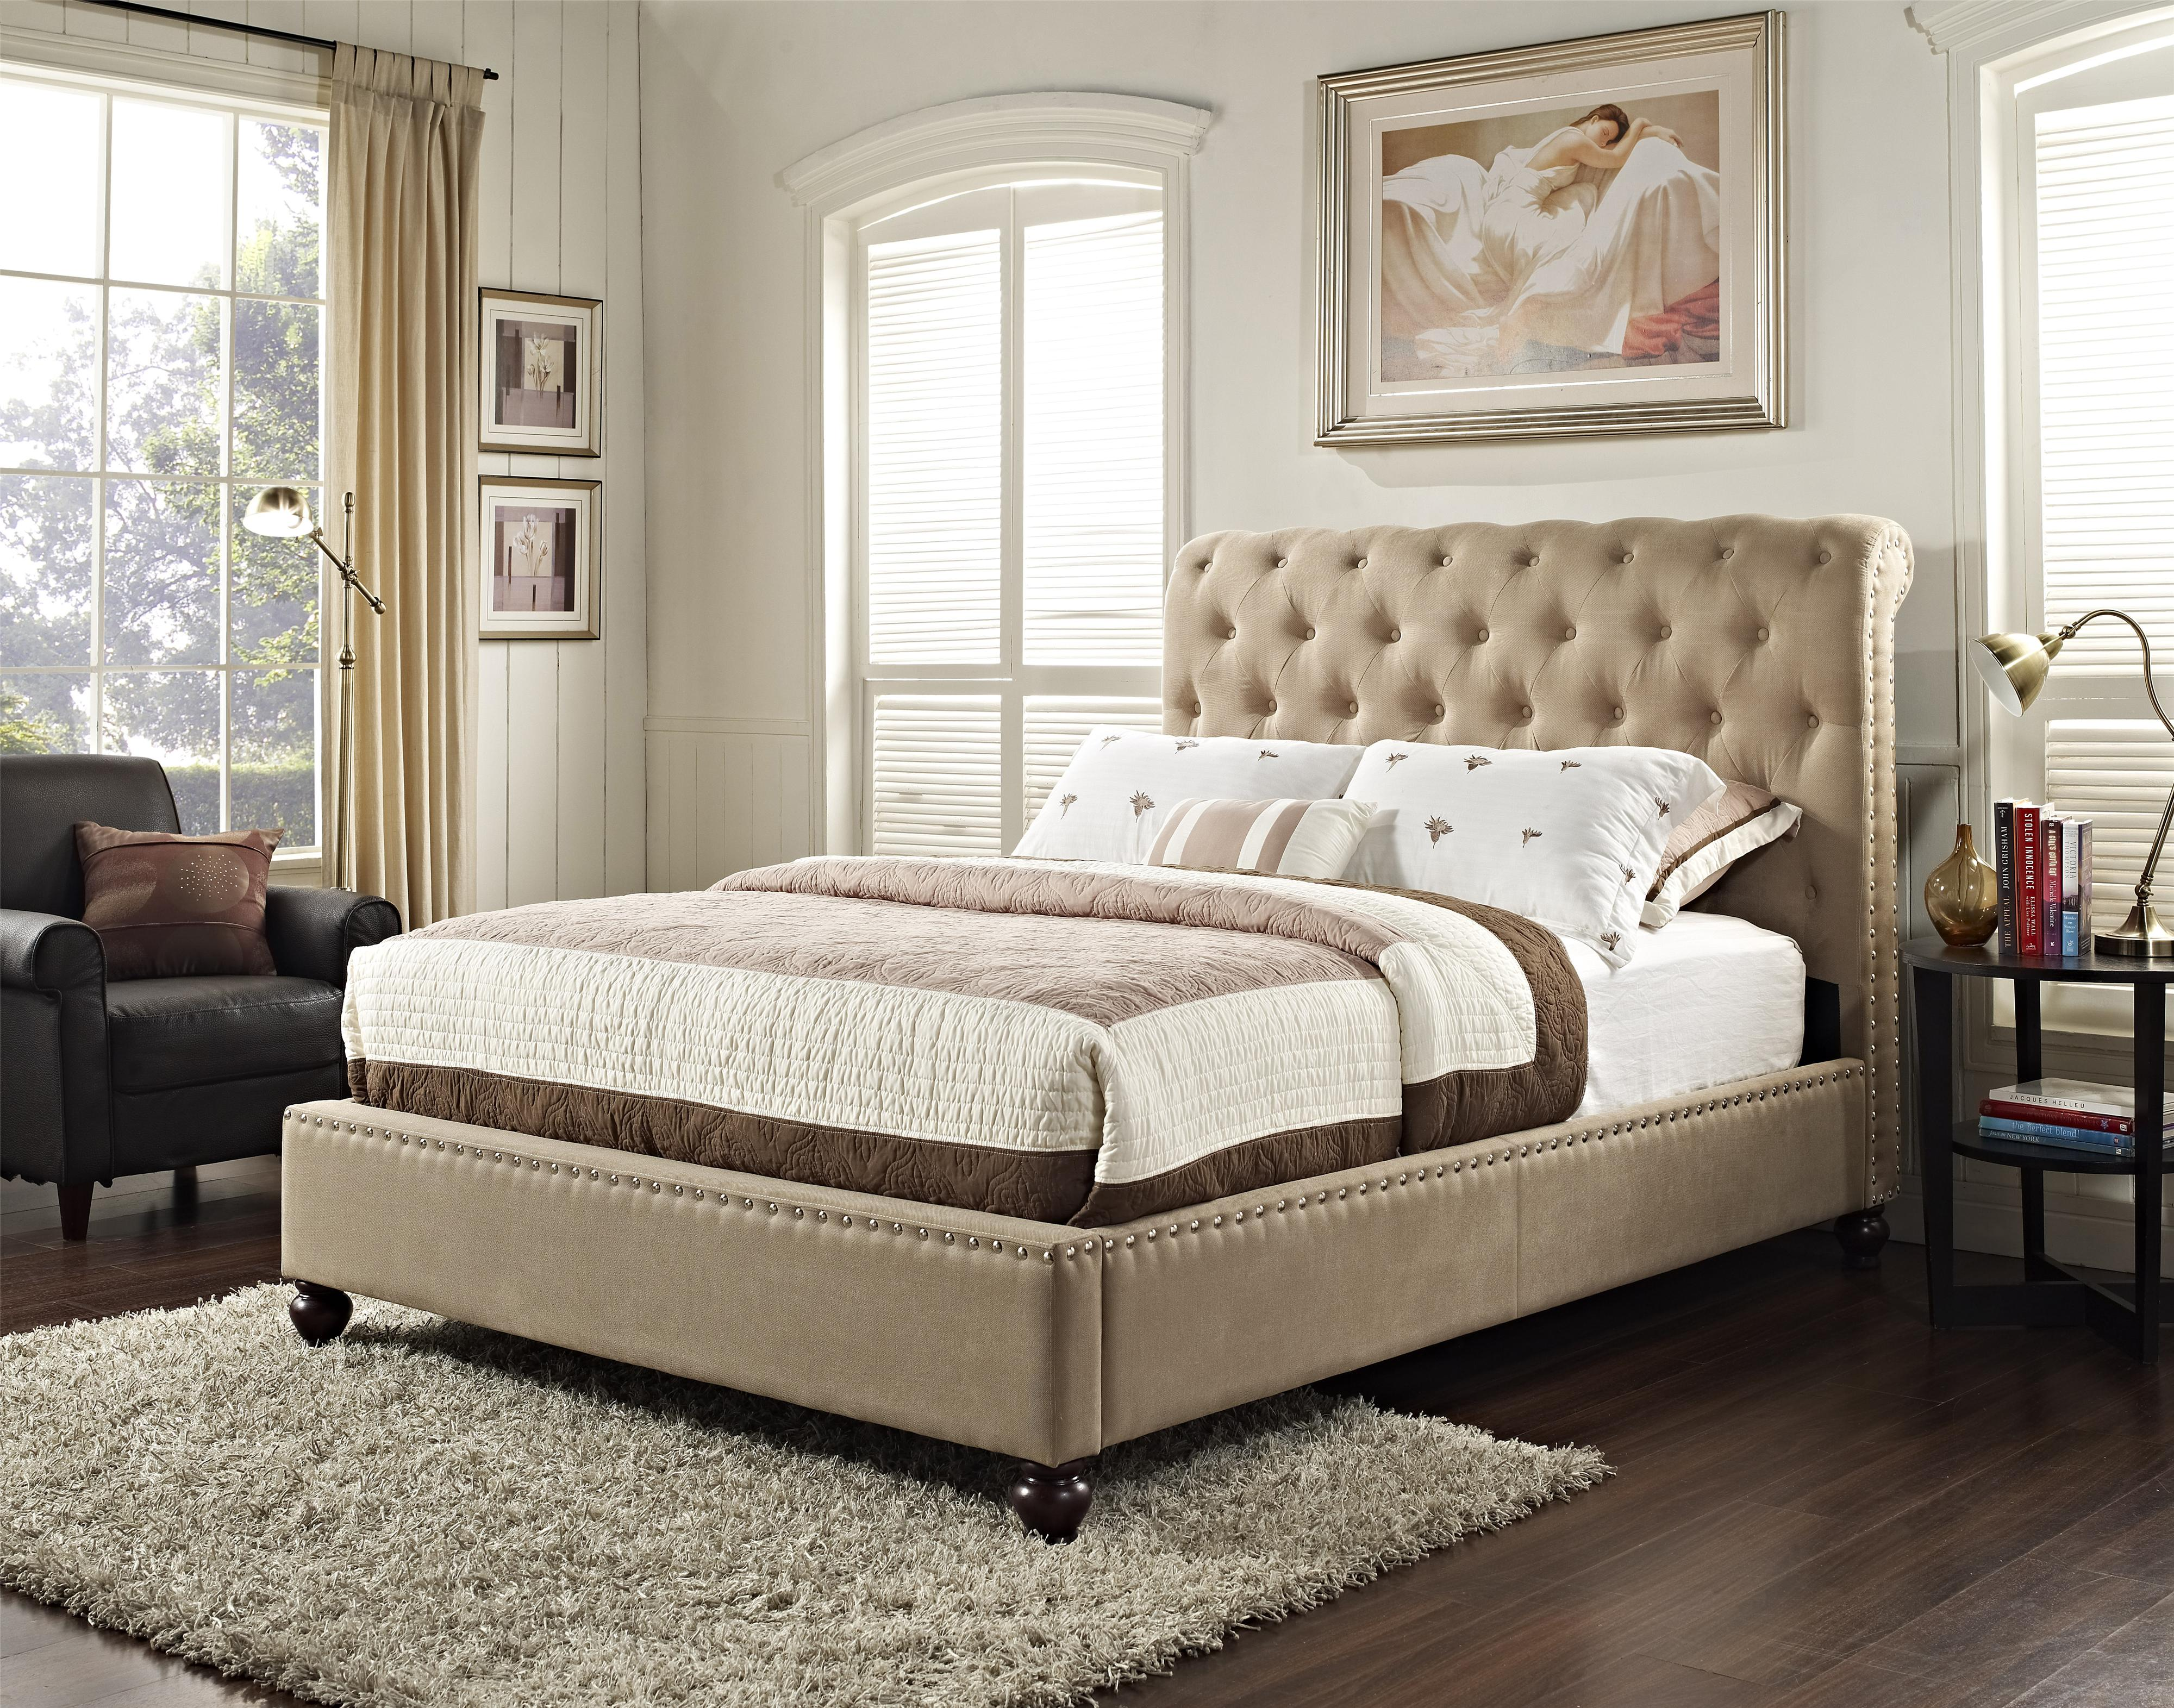 Upholstered Queen Bed With Rolled And Tufted Headboard By Standard Furniture Wolf And Gardiner